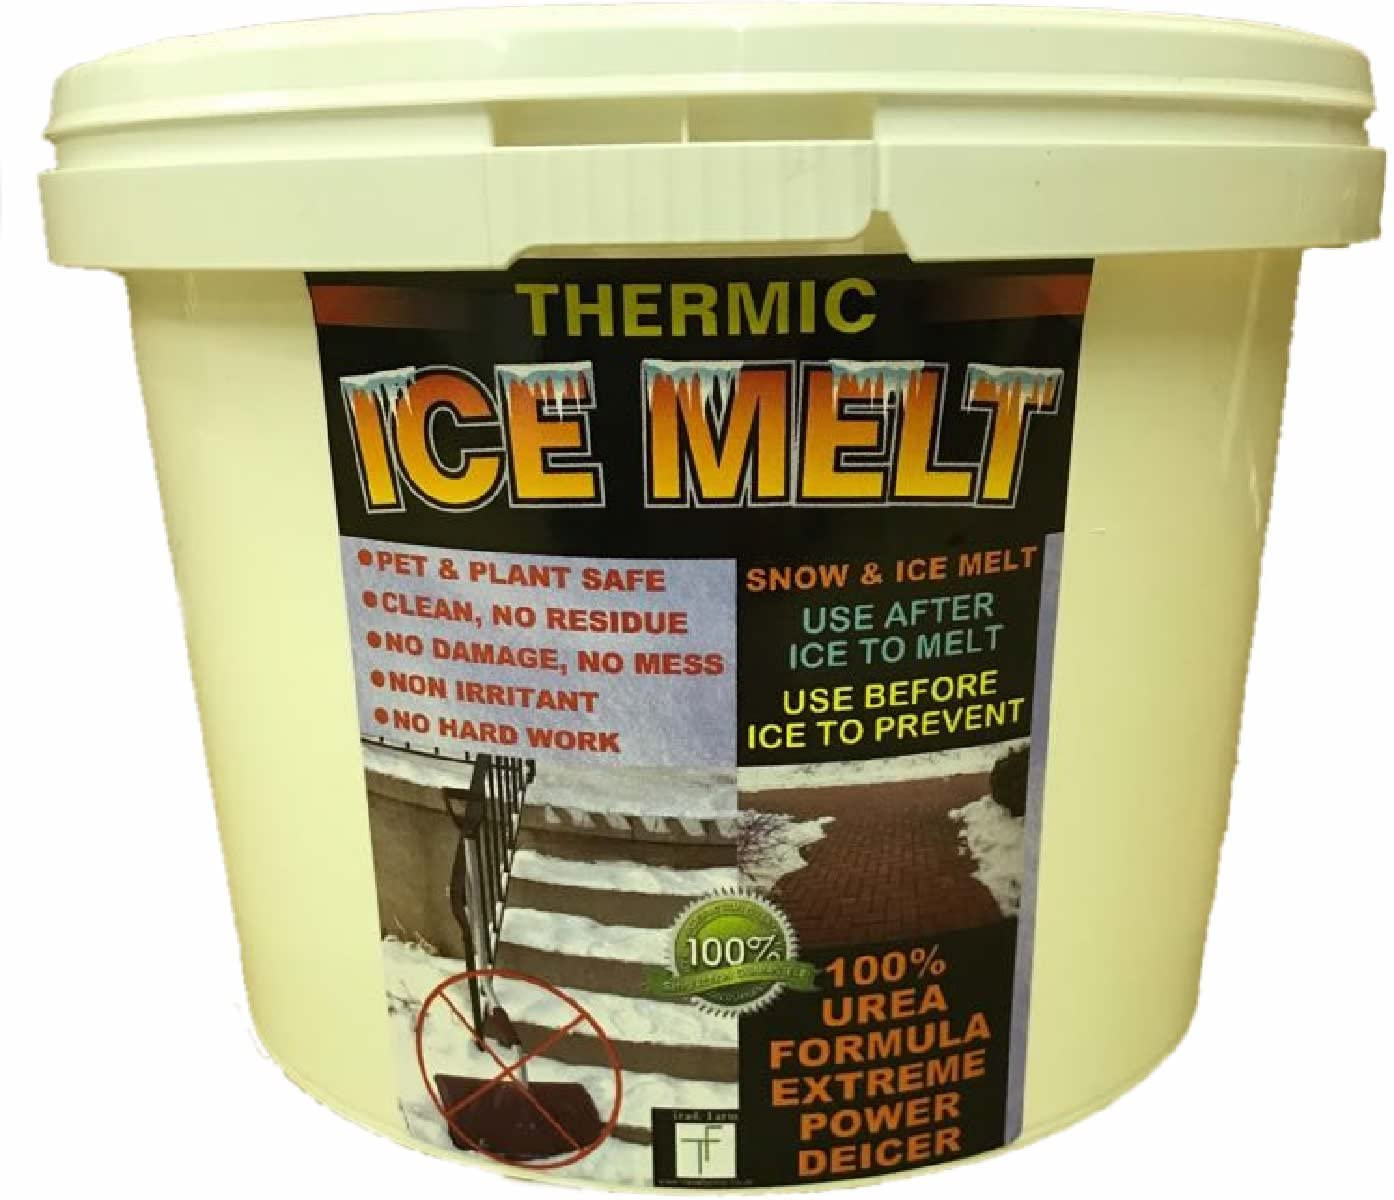 THERMIC Snow and ICE MELT- Child and Pet Safe - Eco-Friendly Powerful and Magic Ice Melt. Non Corrosive. Non Salt. No Mess, No Residue, No Damage, No Fuss. Thermic Ice Melter for Home and Business.